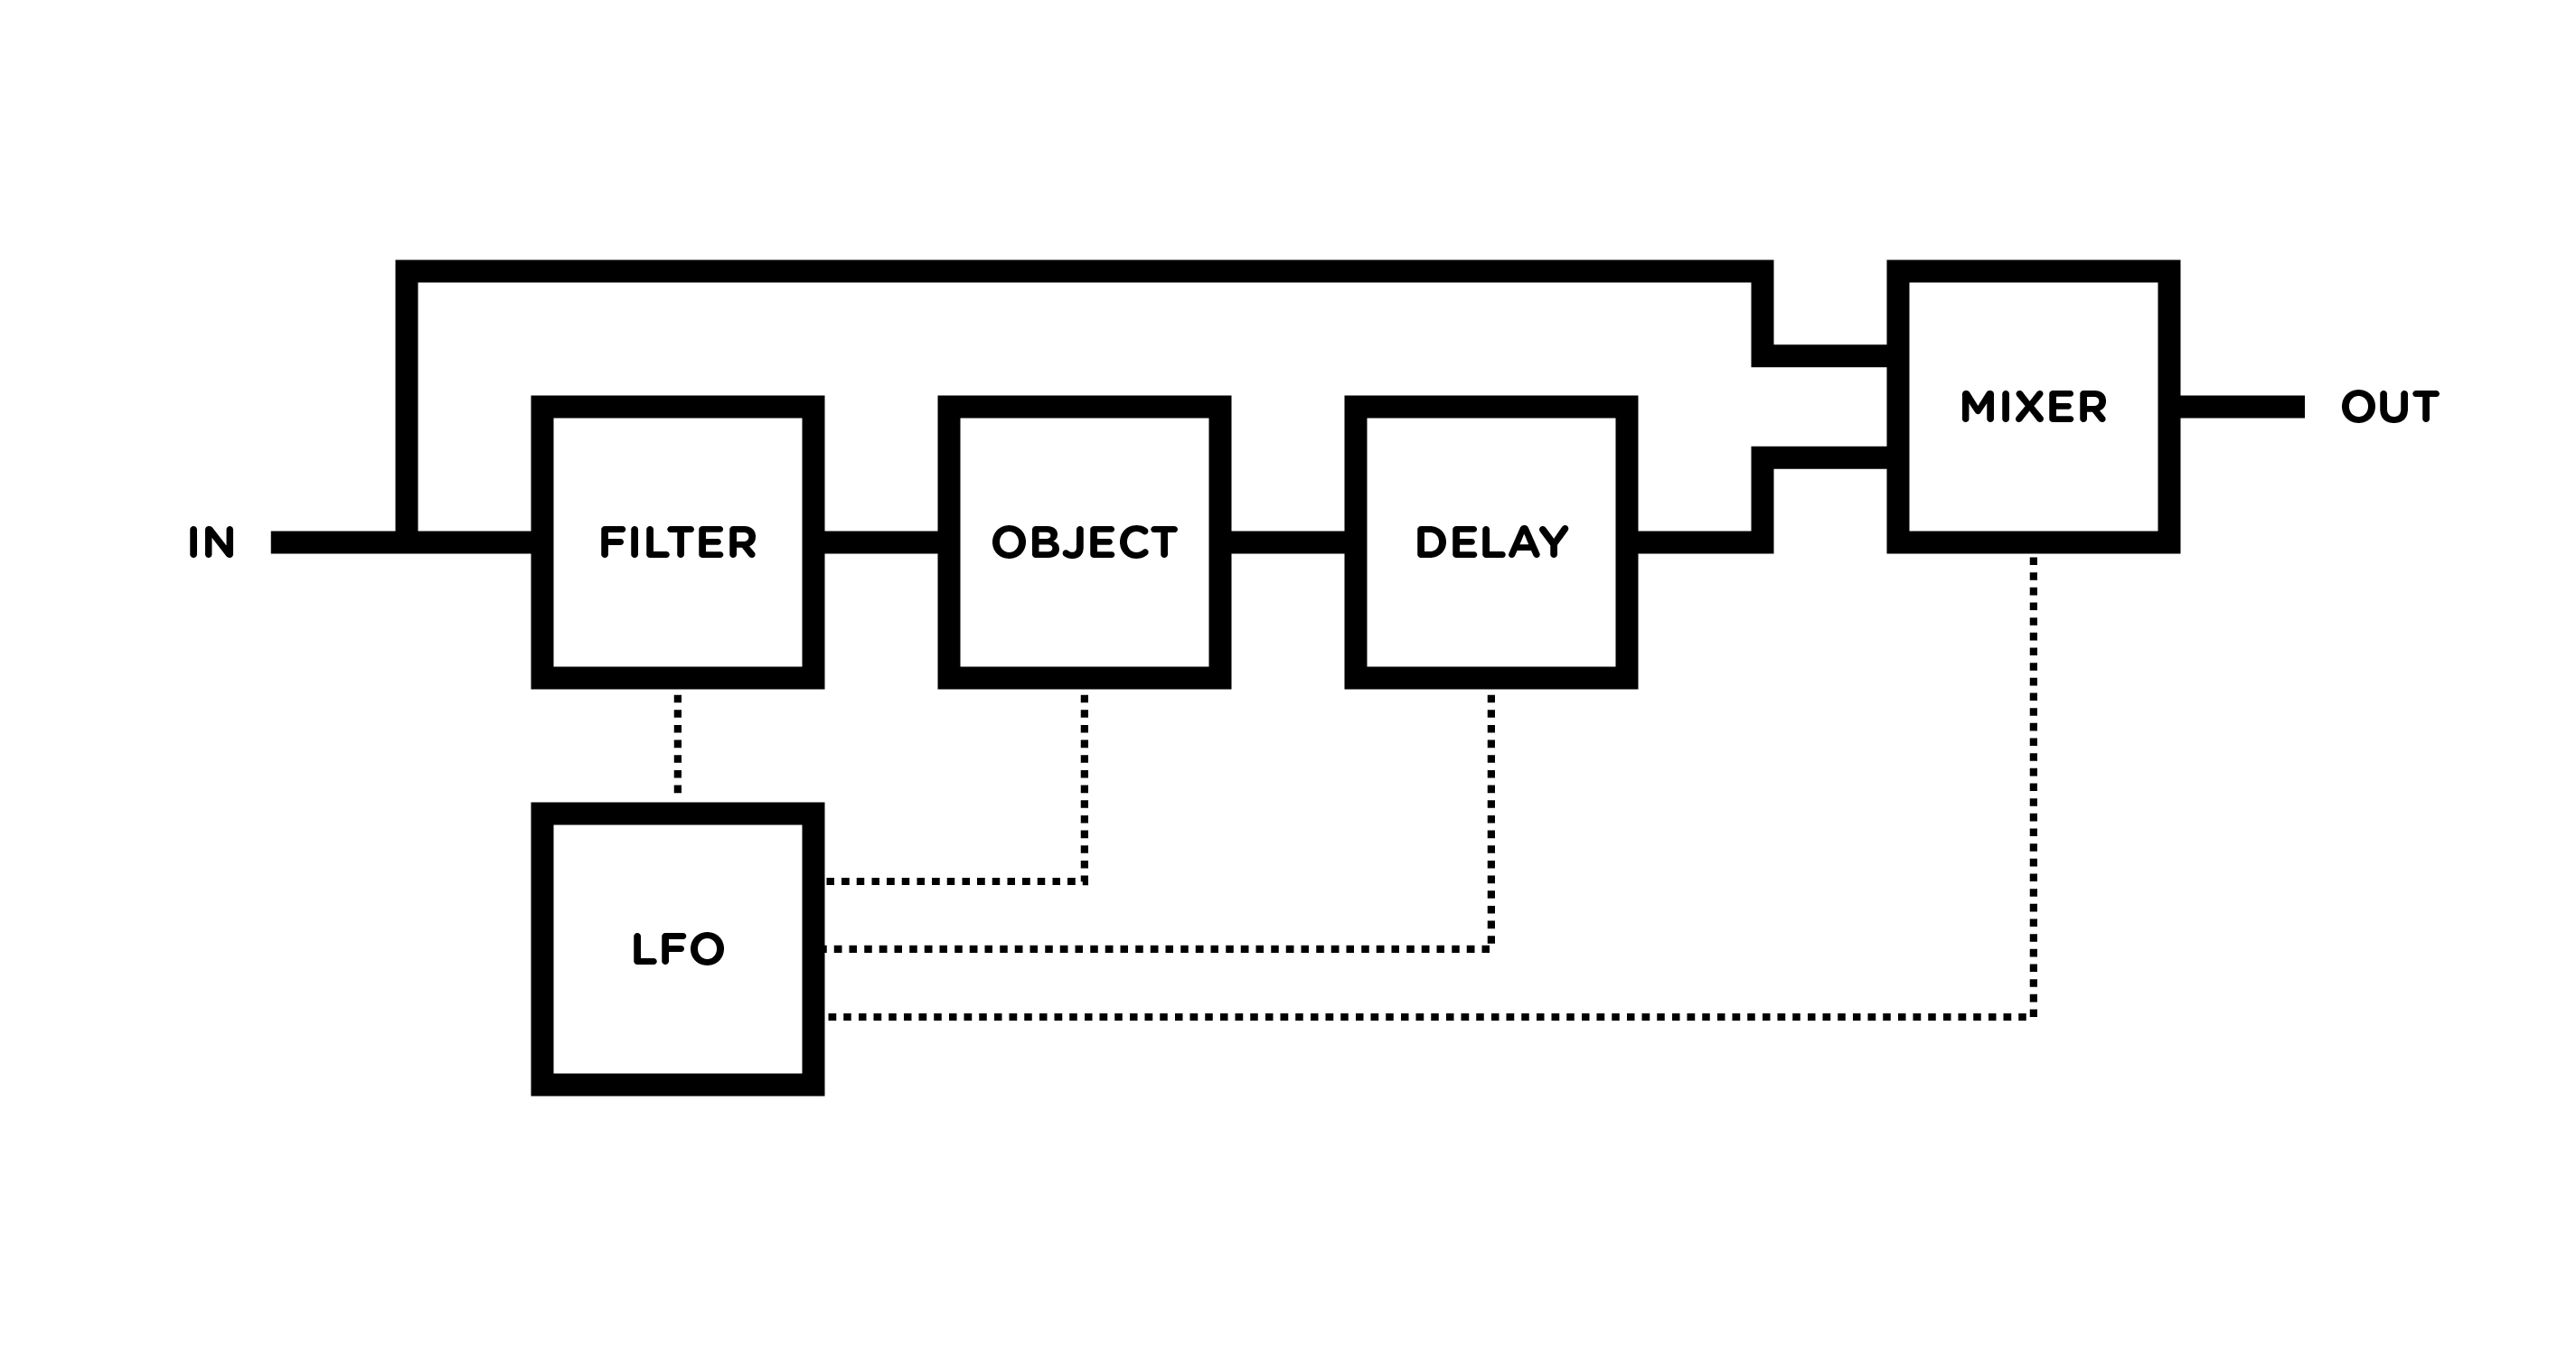 AAS Objeq Delay user manual